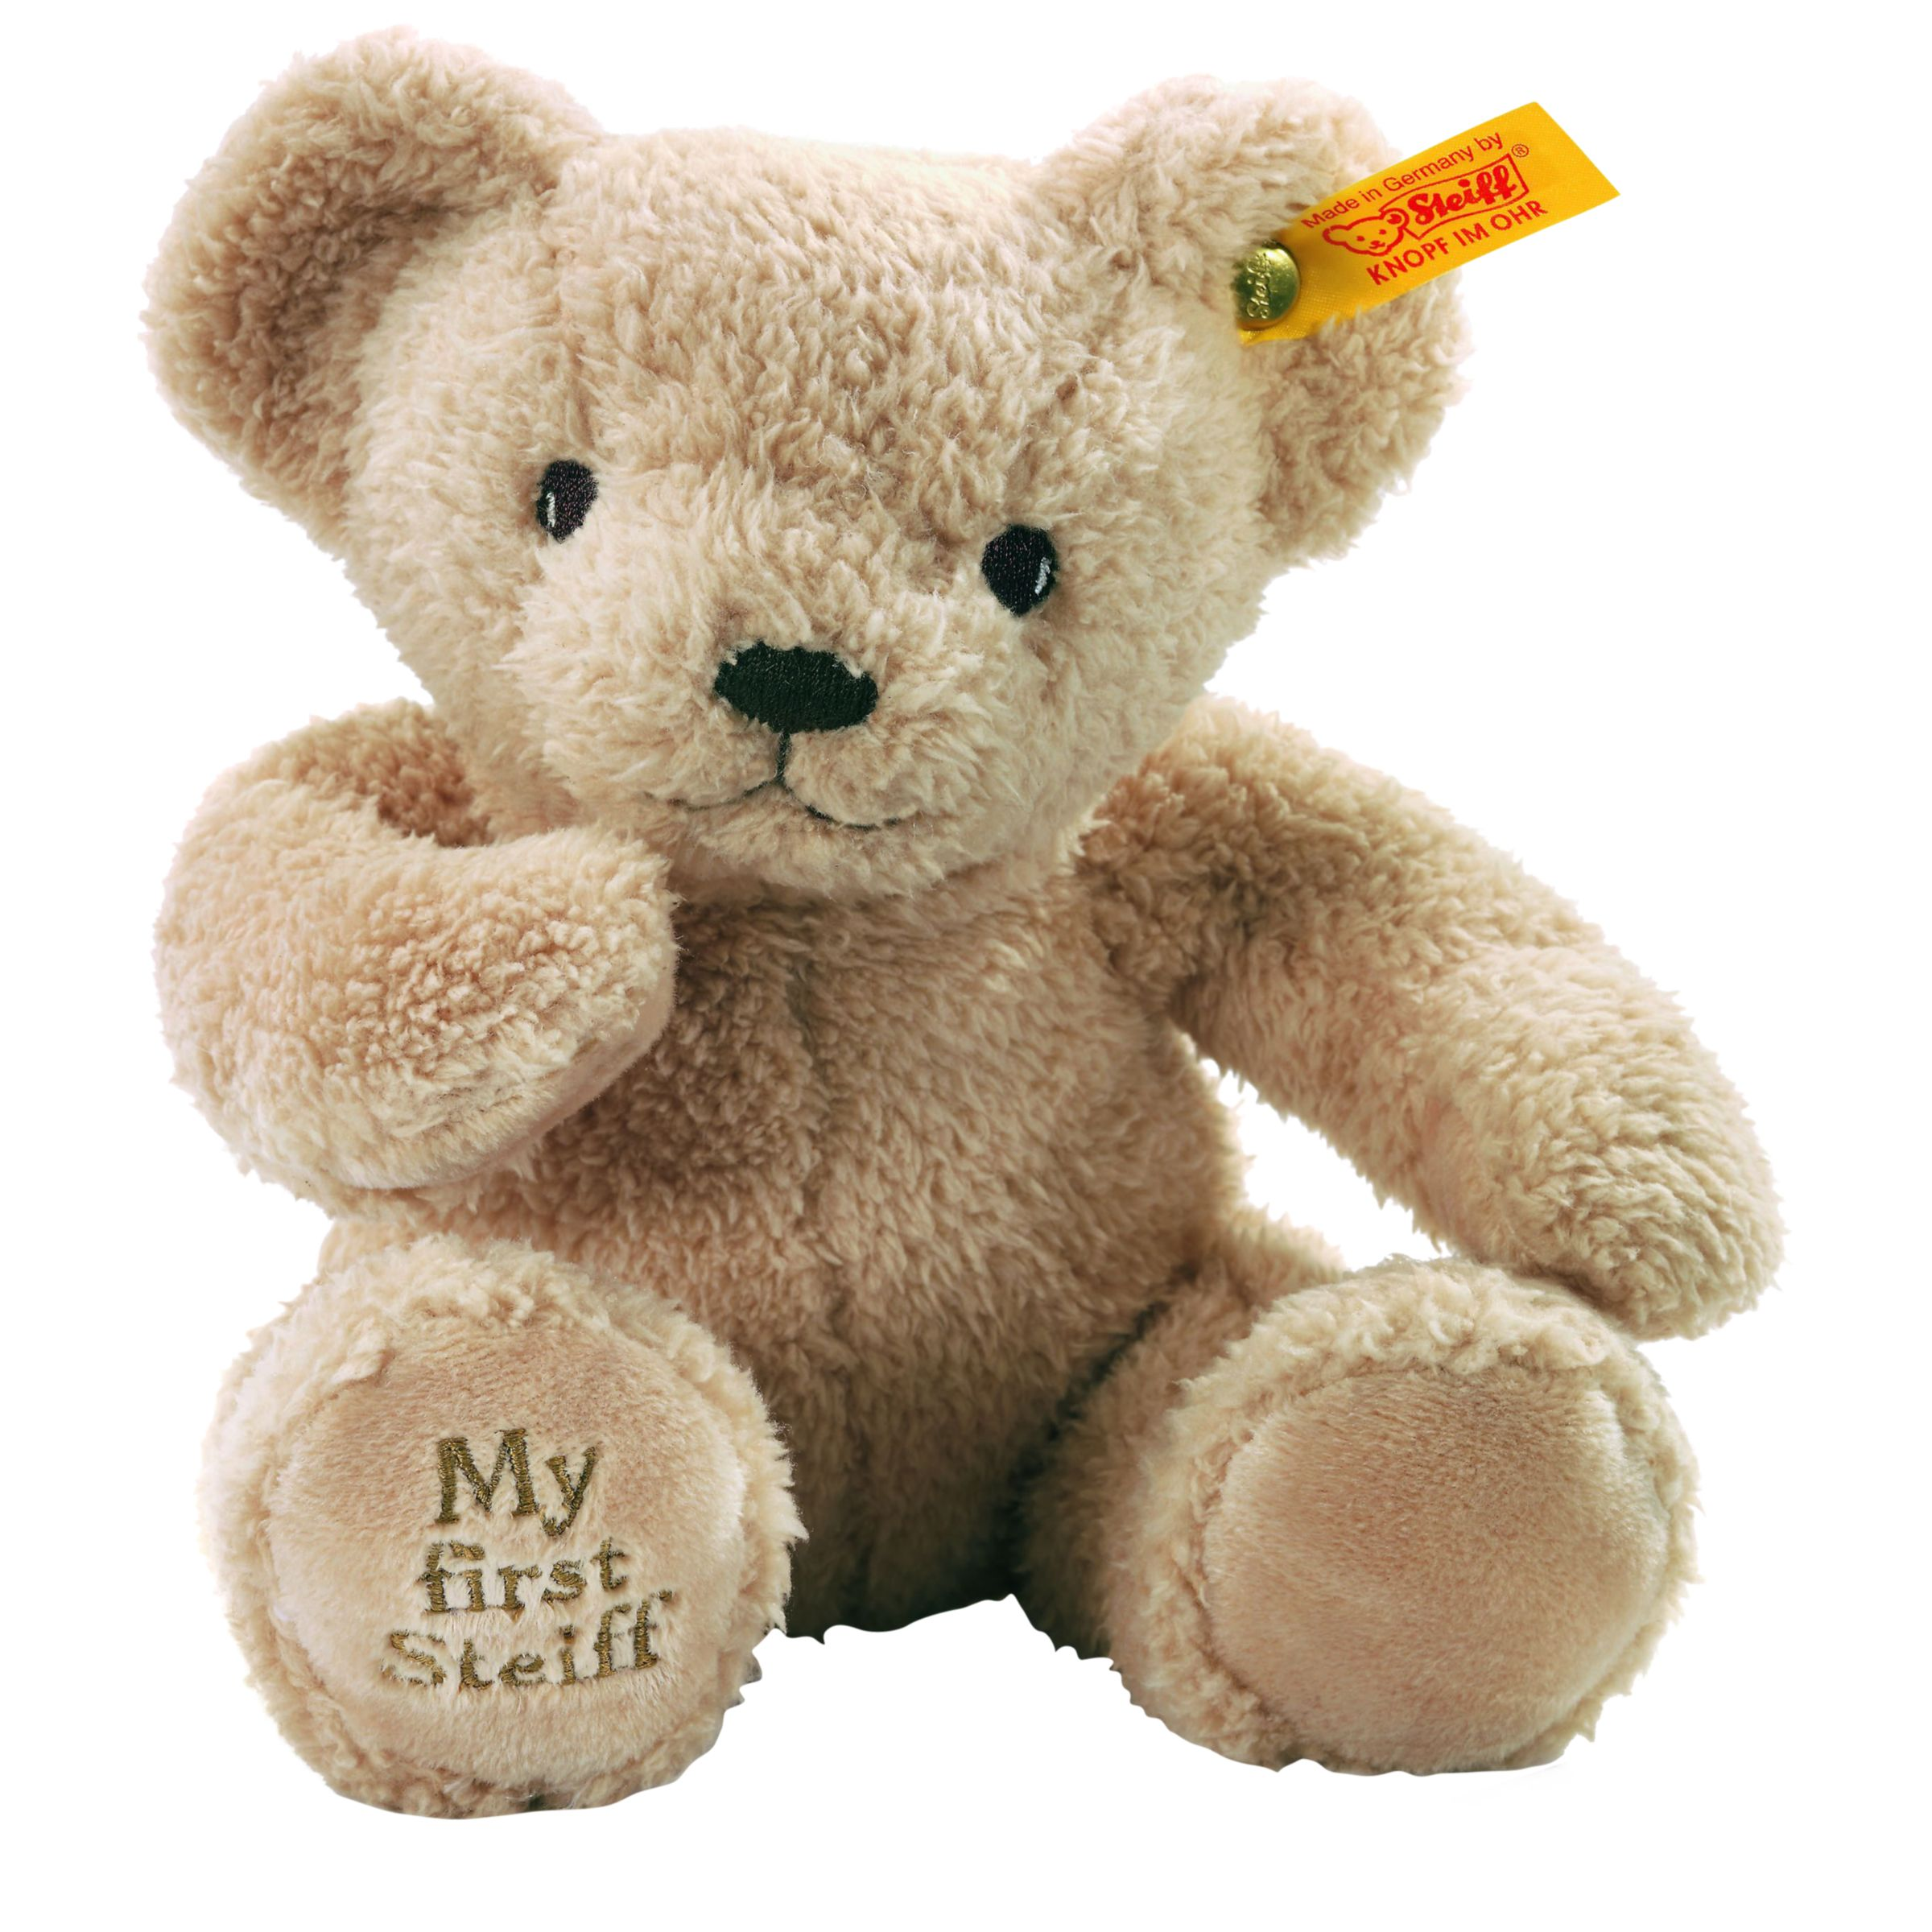 Steiff Steiff My First Teddy Bear Soft Toy